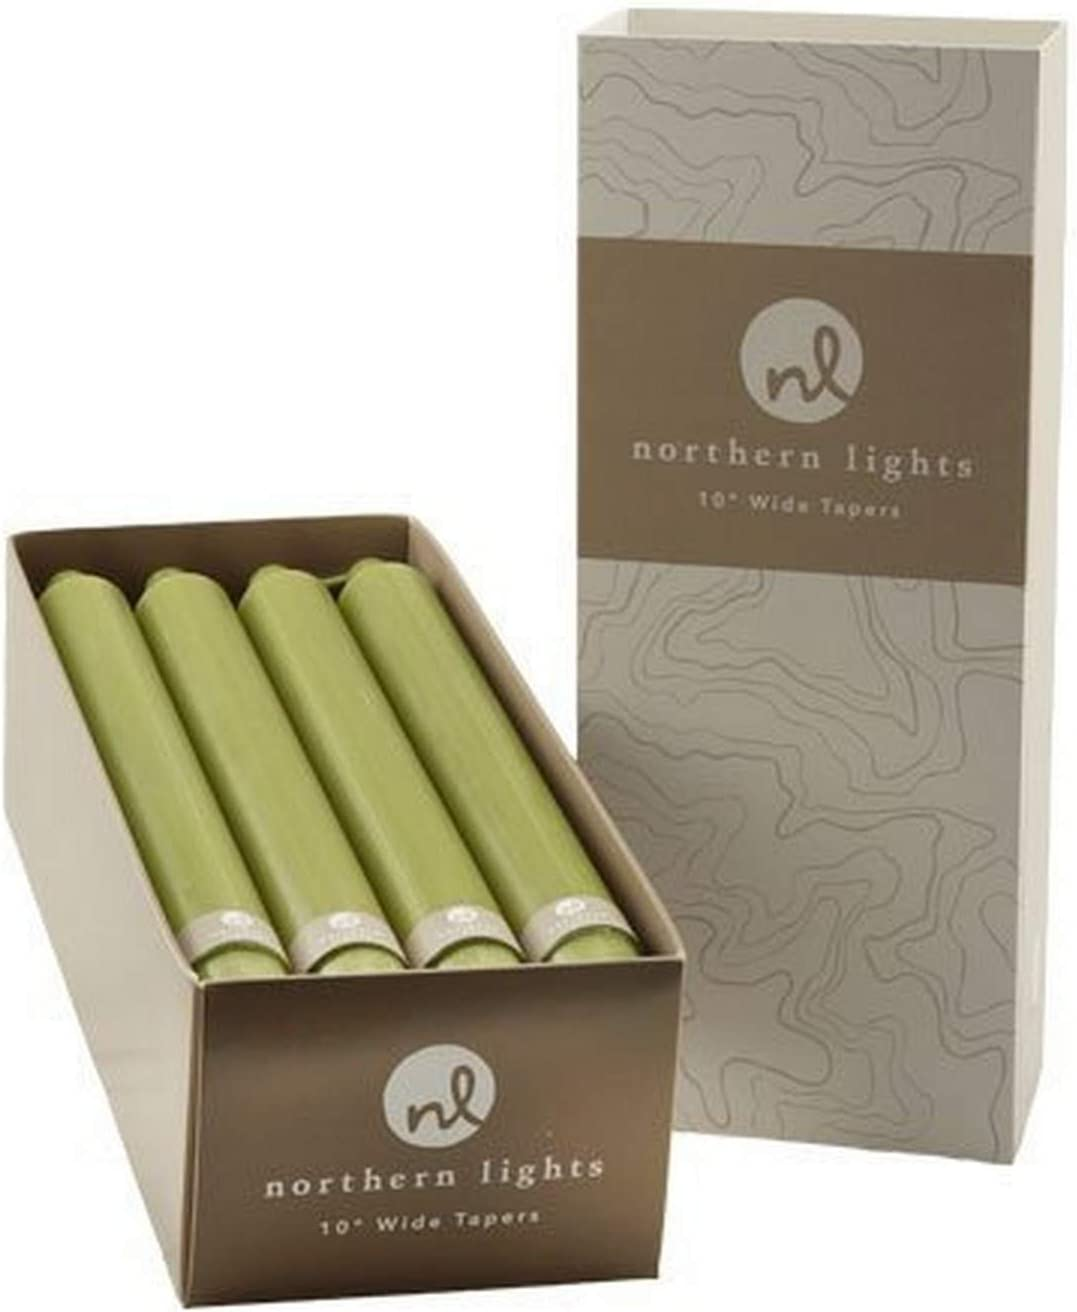 Northern Max 40% OFF Lights Candles Nlc Wide Tapers Moss Attention brand 12Pc Box 10 Green I